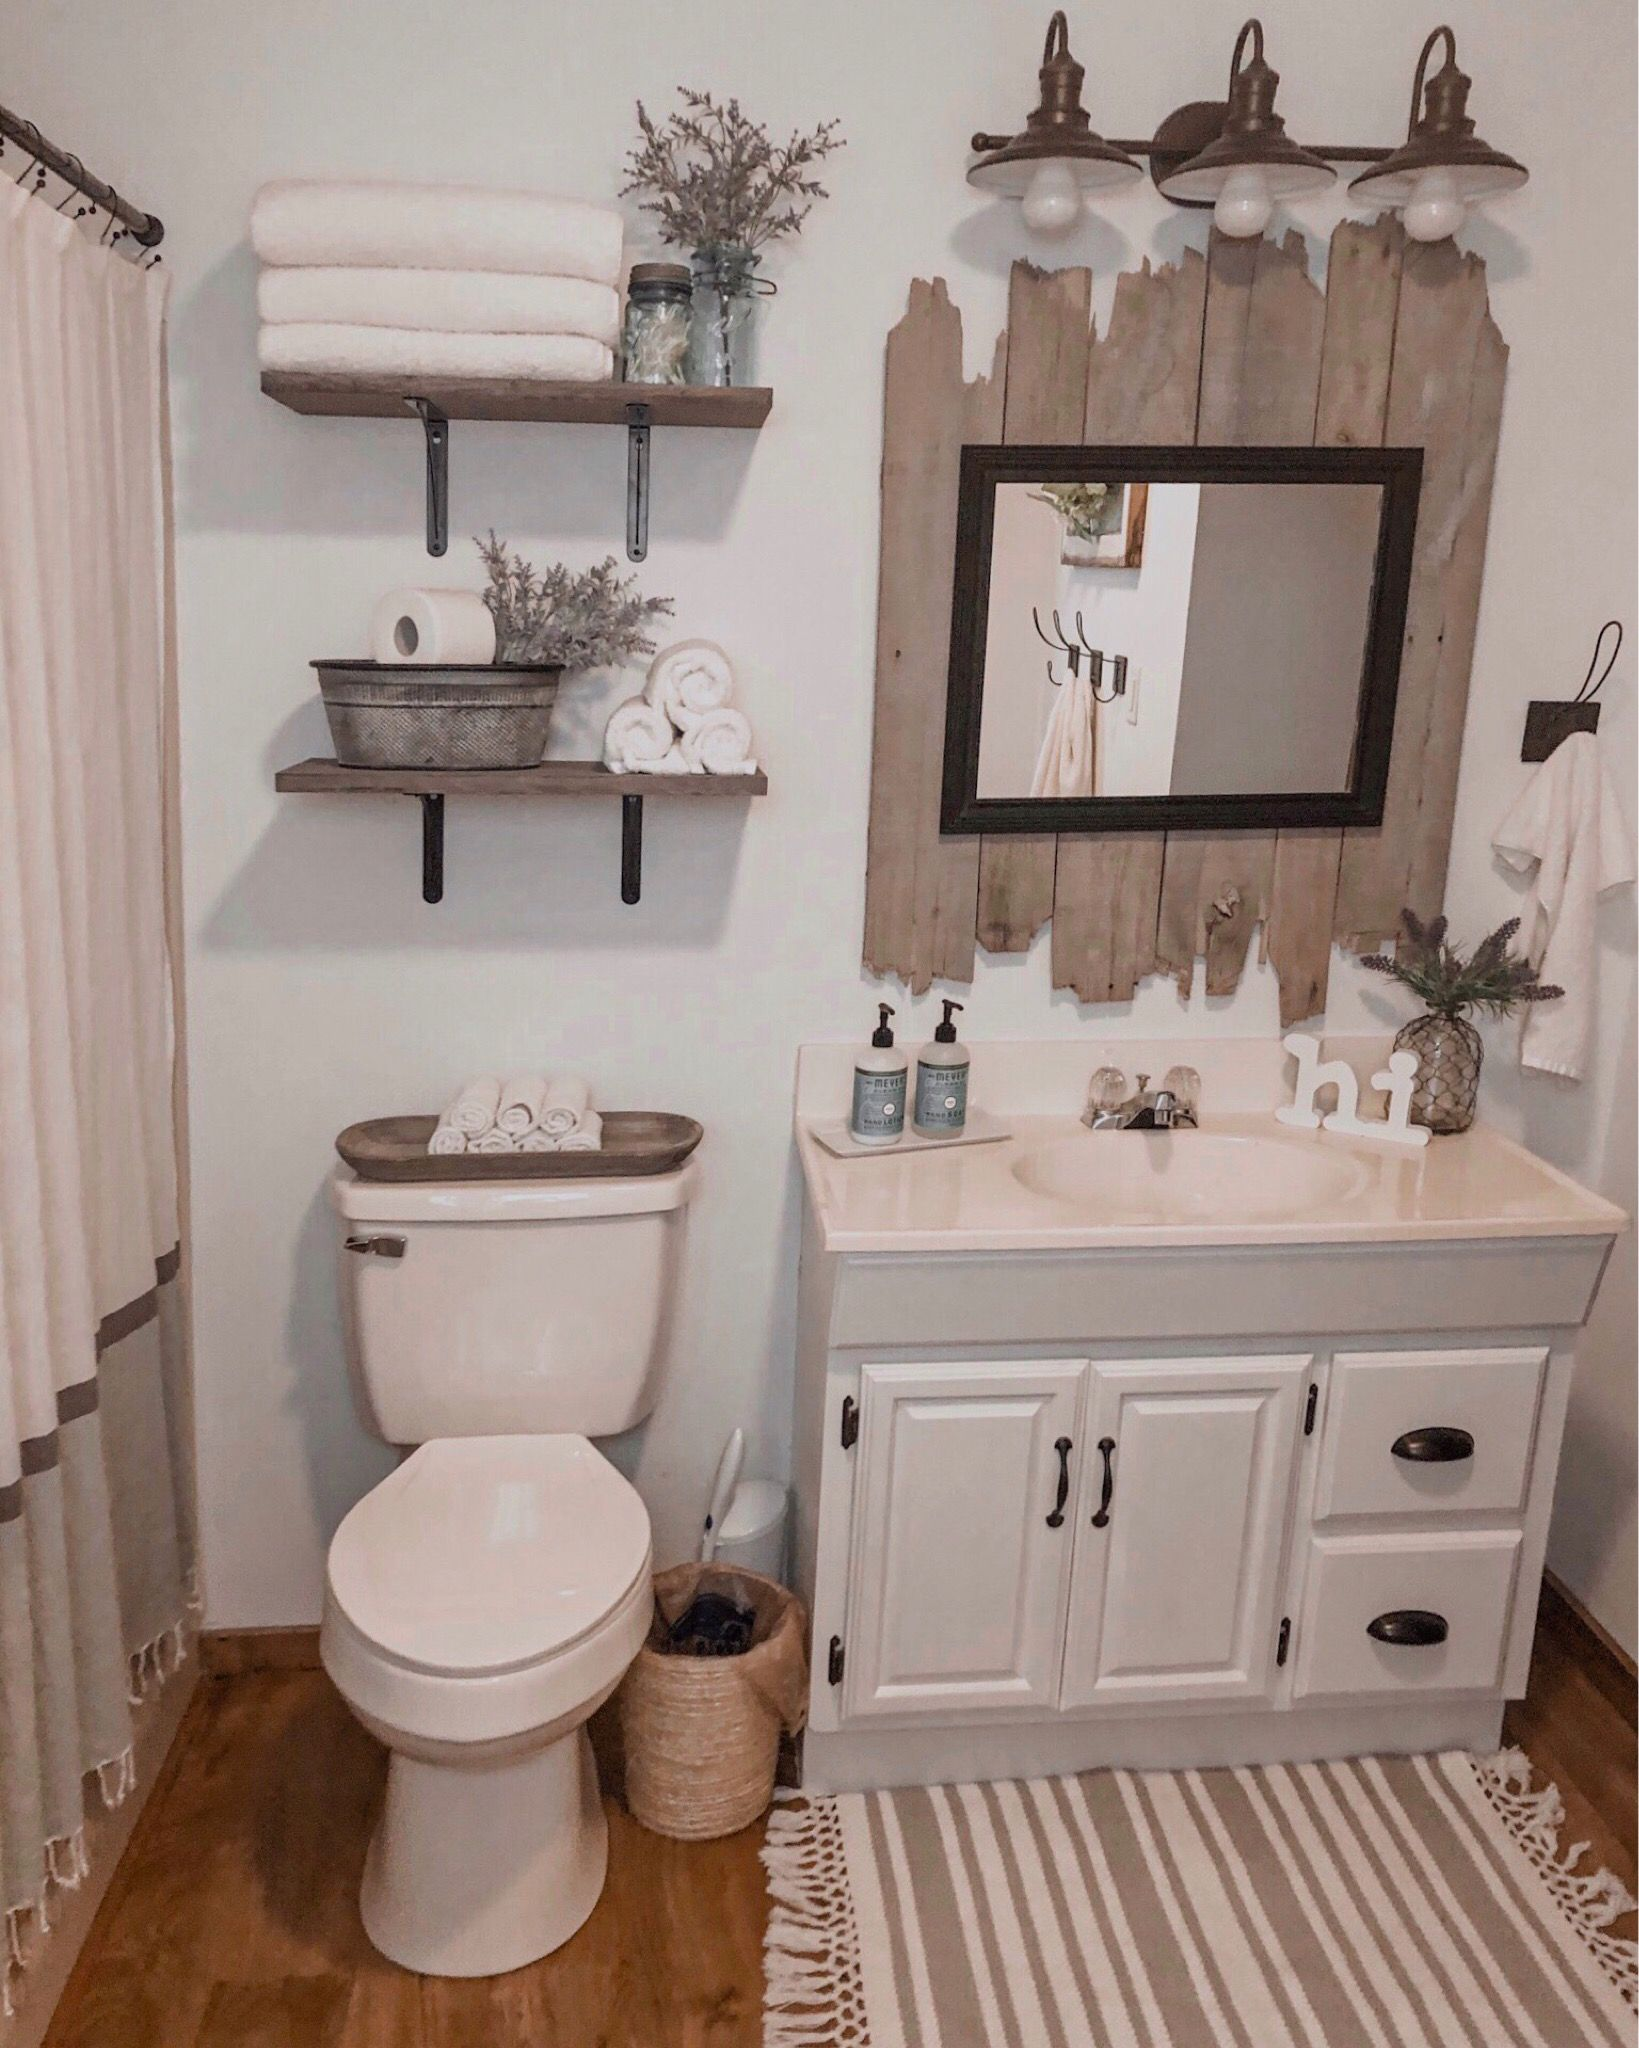 Farmhouse Bathroom Bathroom Decor Rustic Bathroom Rustic Bathroom Decor Bathroom Rem In 2020 Small Bathroom Decor Restroom Decor Farmhouse Bathroom Decor